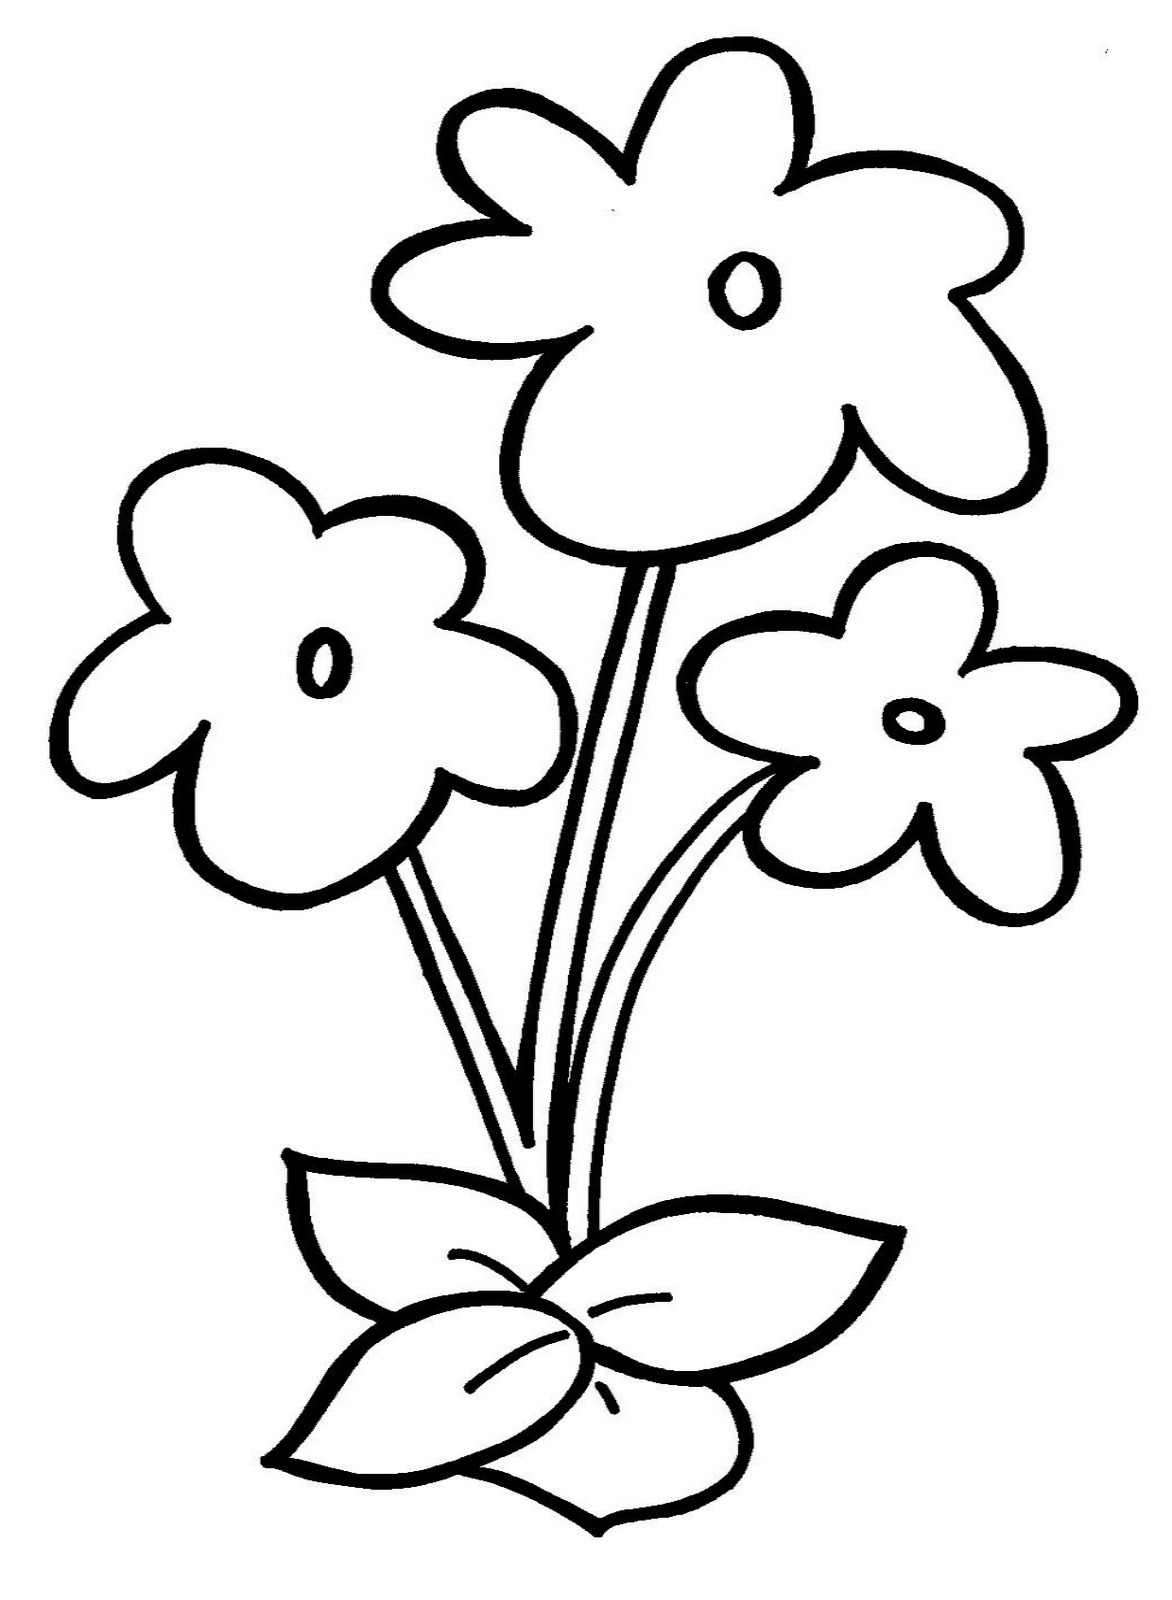 coloring pics of flowers free printable flower coloring pages for kids cool2bkids flowers of pics coloring